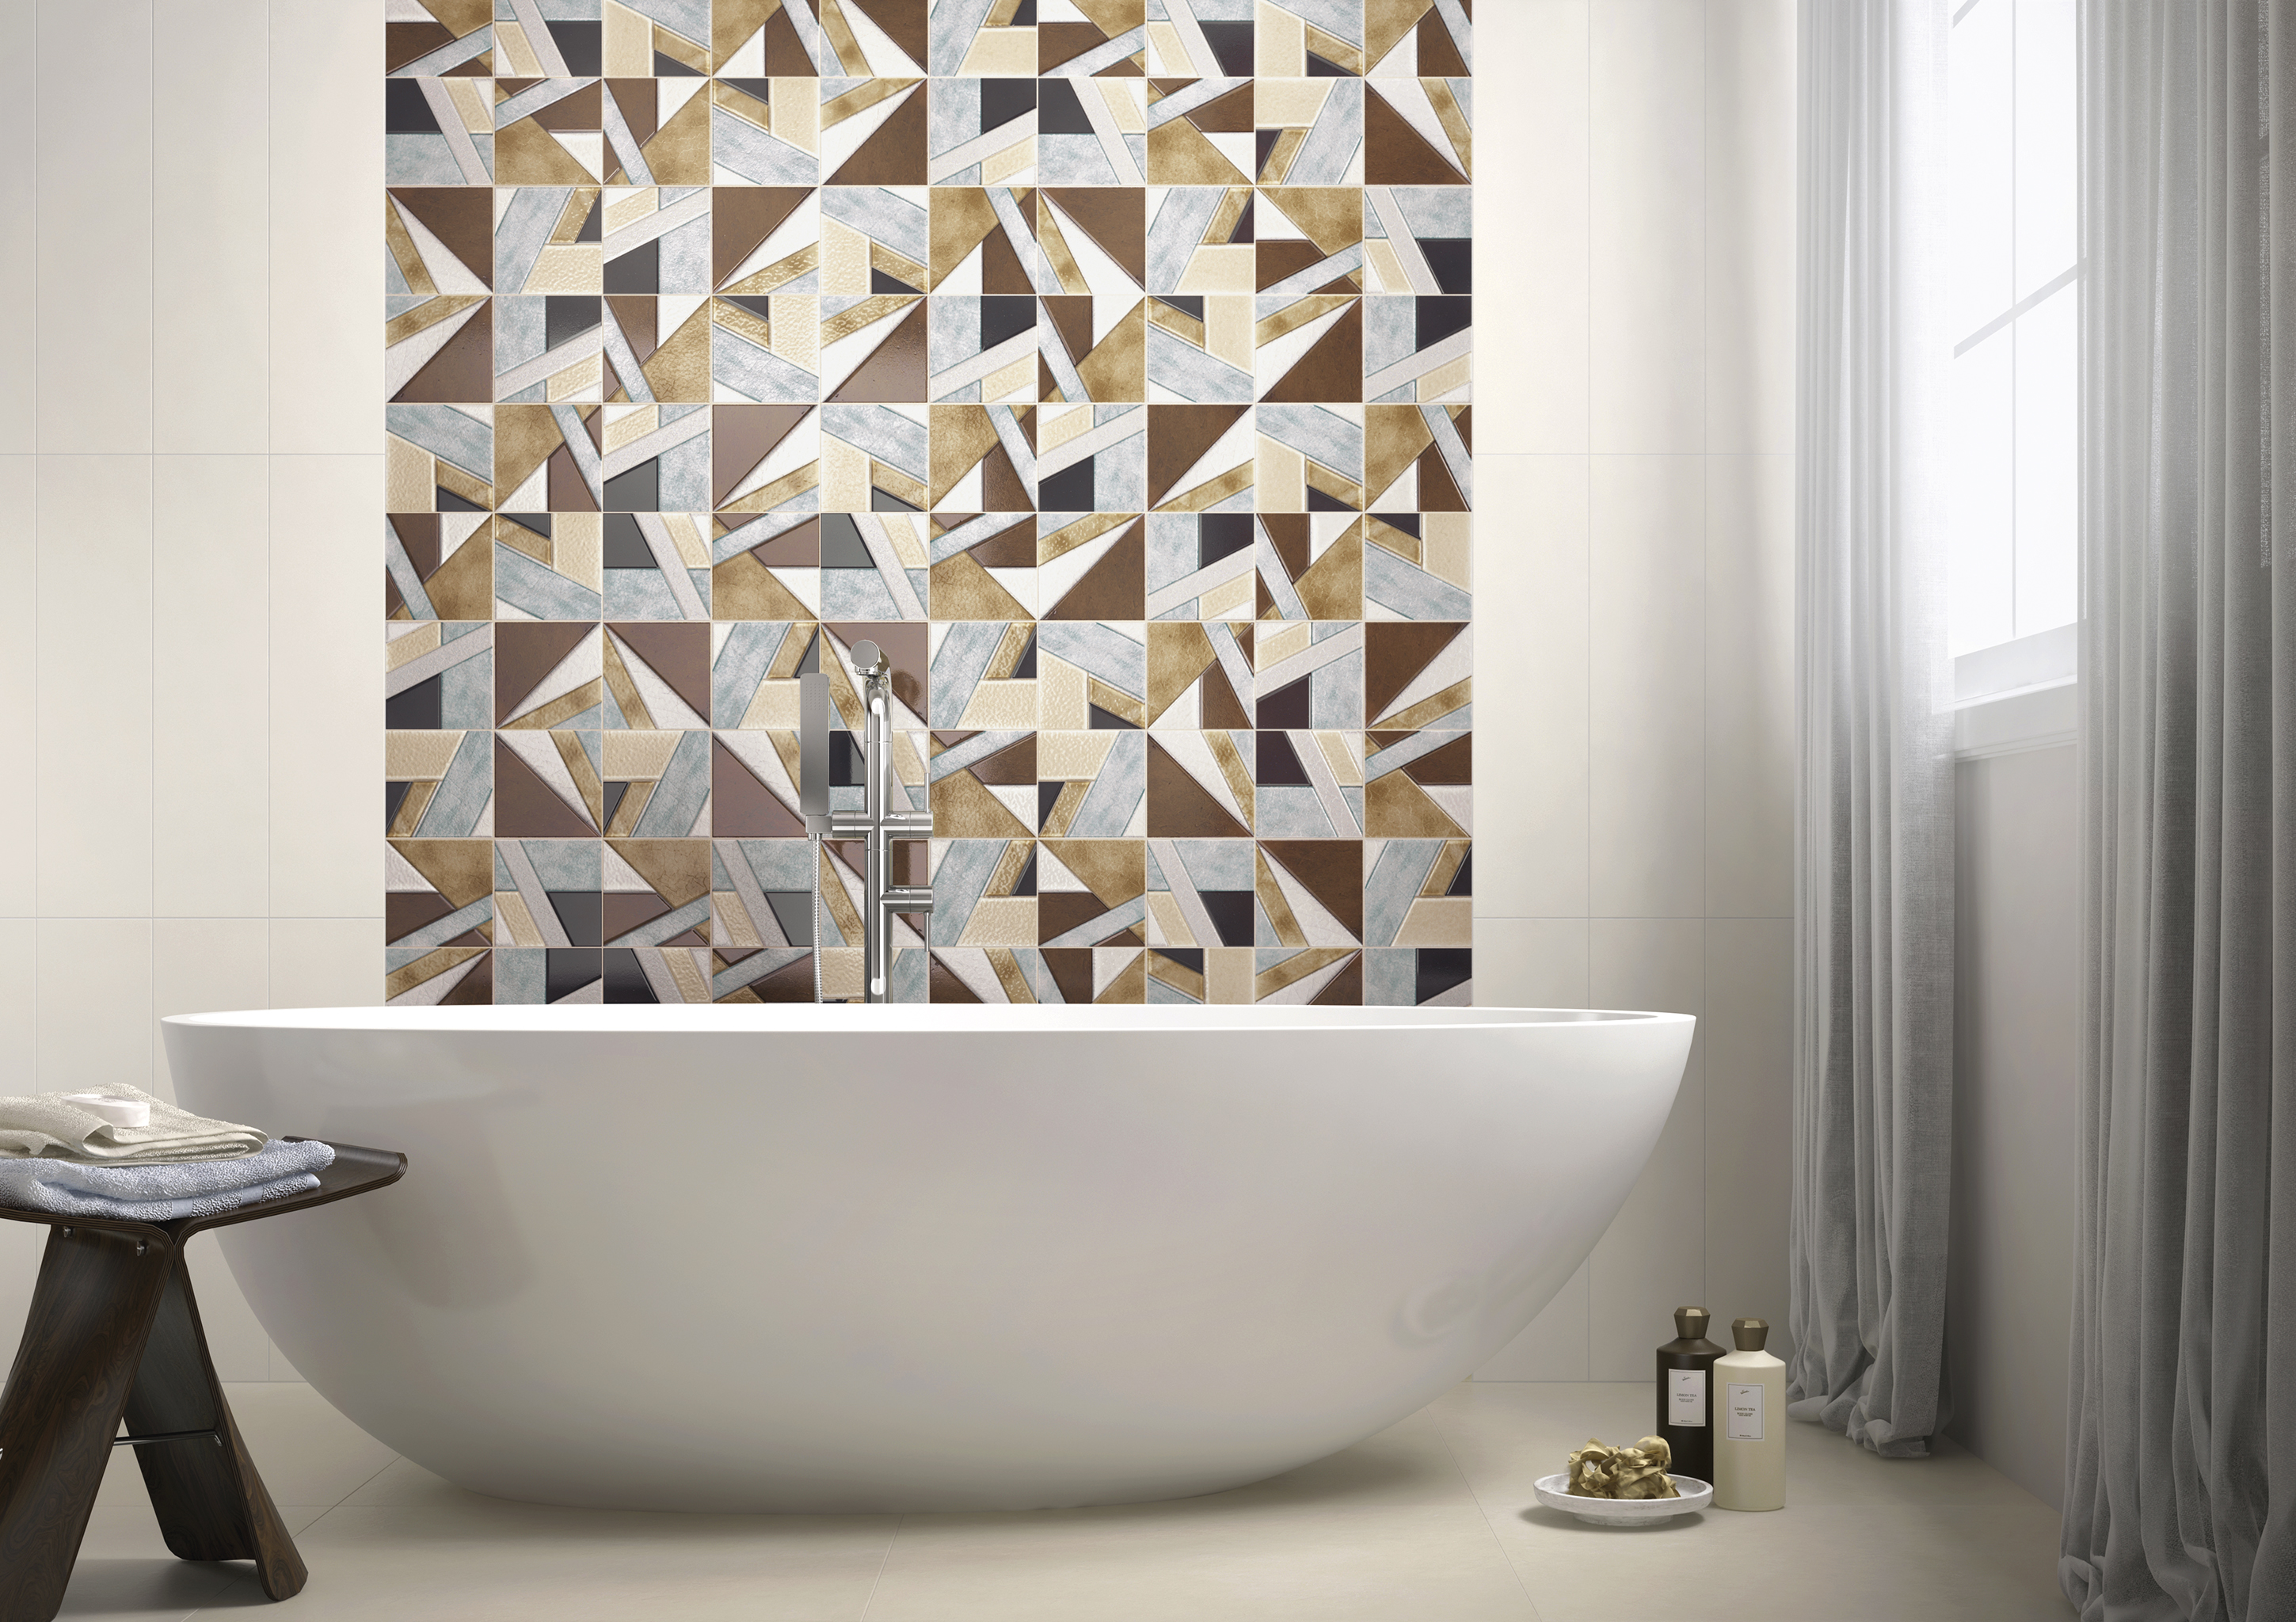 2016 tile style tile from spain - Smart tiles chez leroy merlin ...